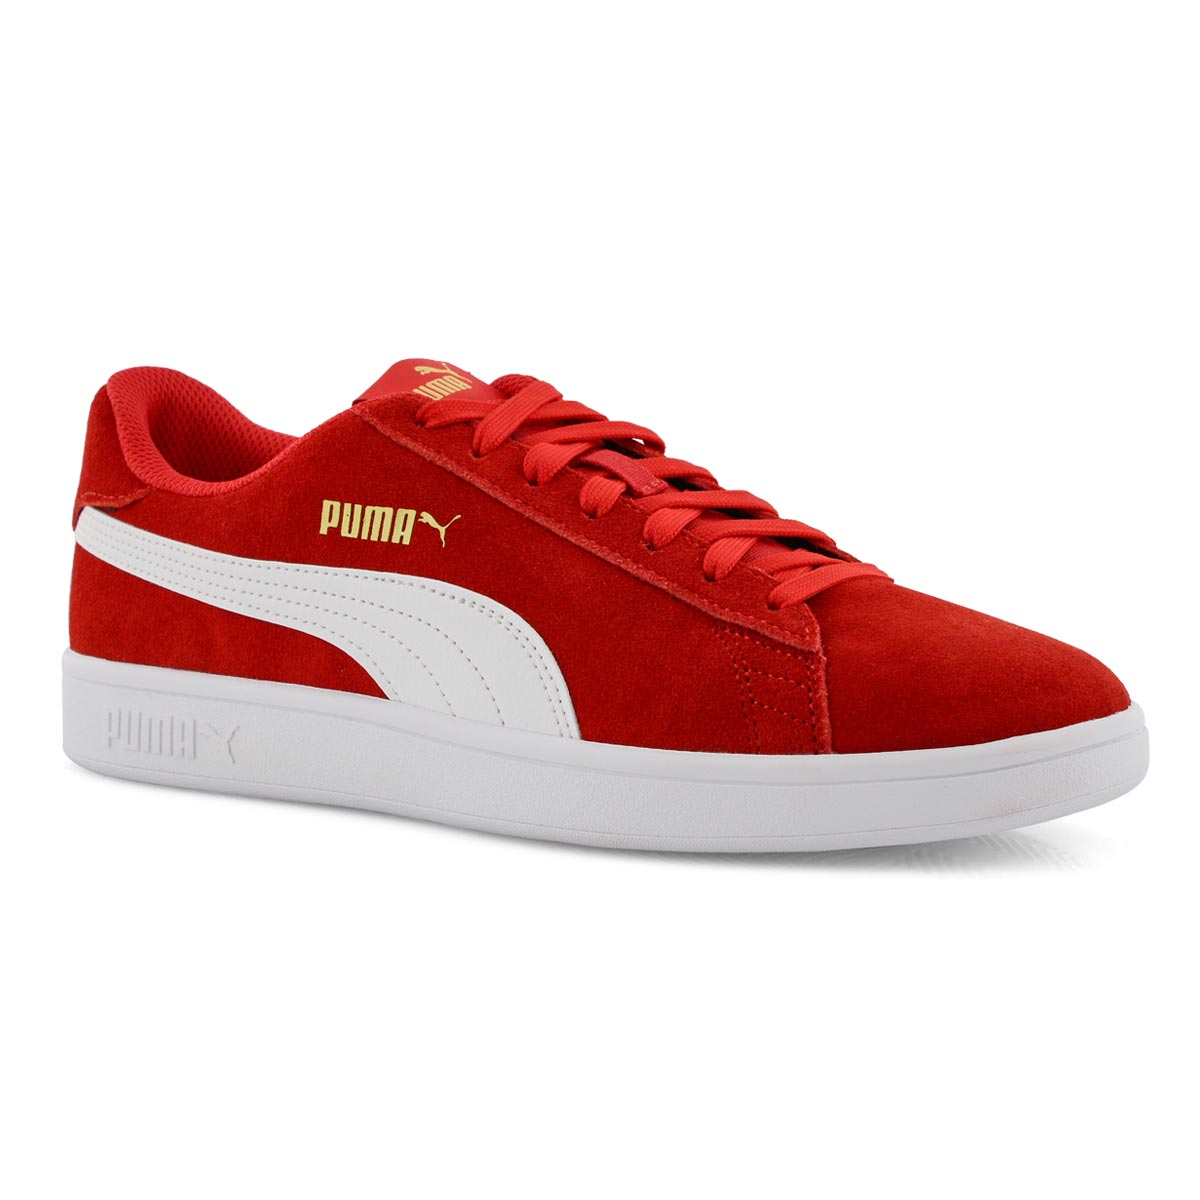 quality design 155b6 93109 Men's PUMA SMASH v2 red/white sneakers